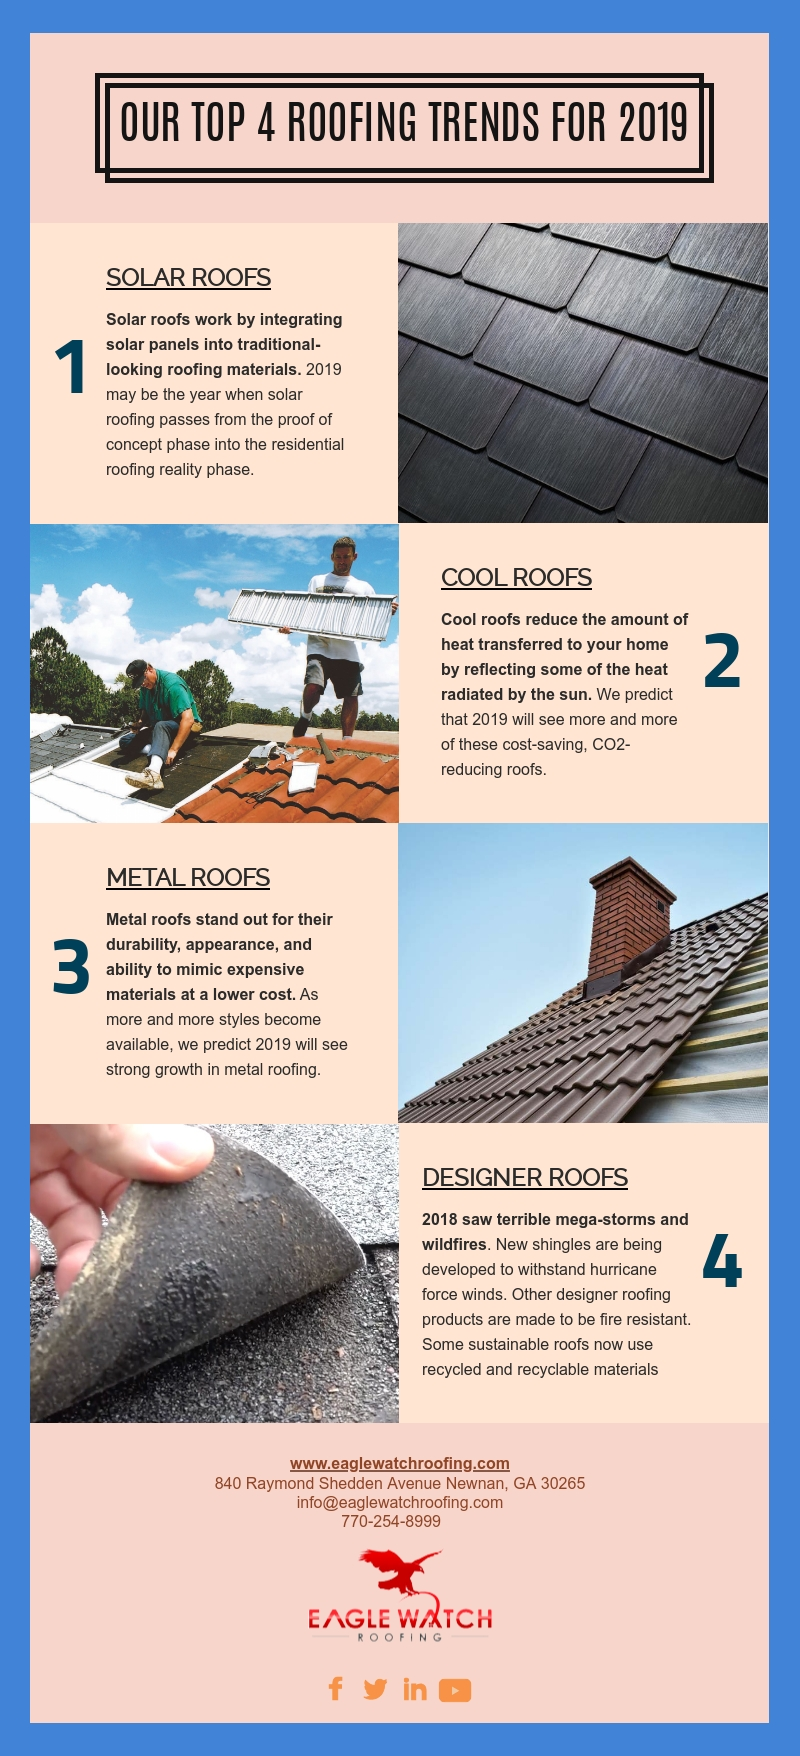 Our Top 4 Roofing Trends for 2019 [infographic]